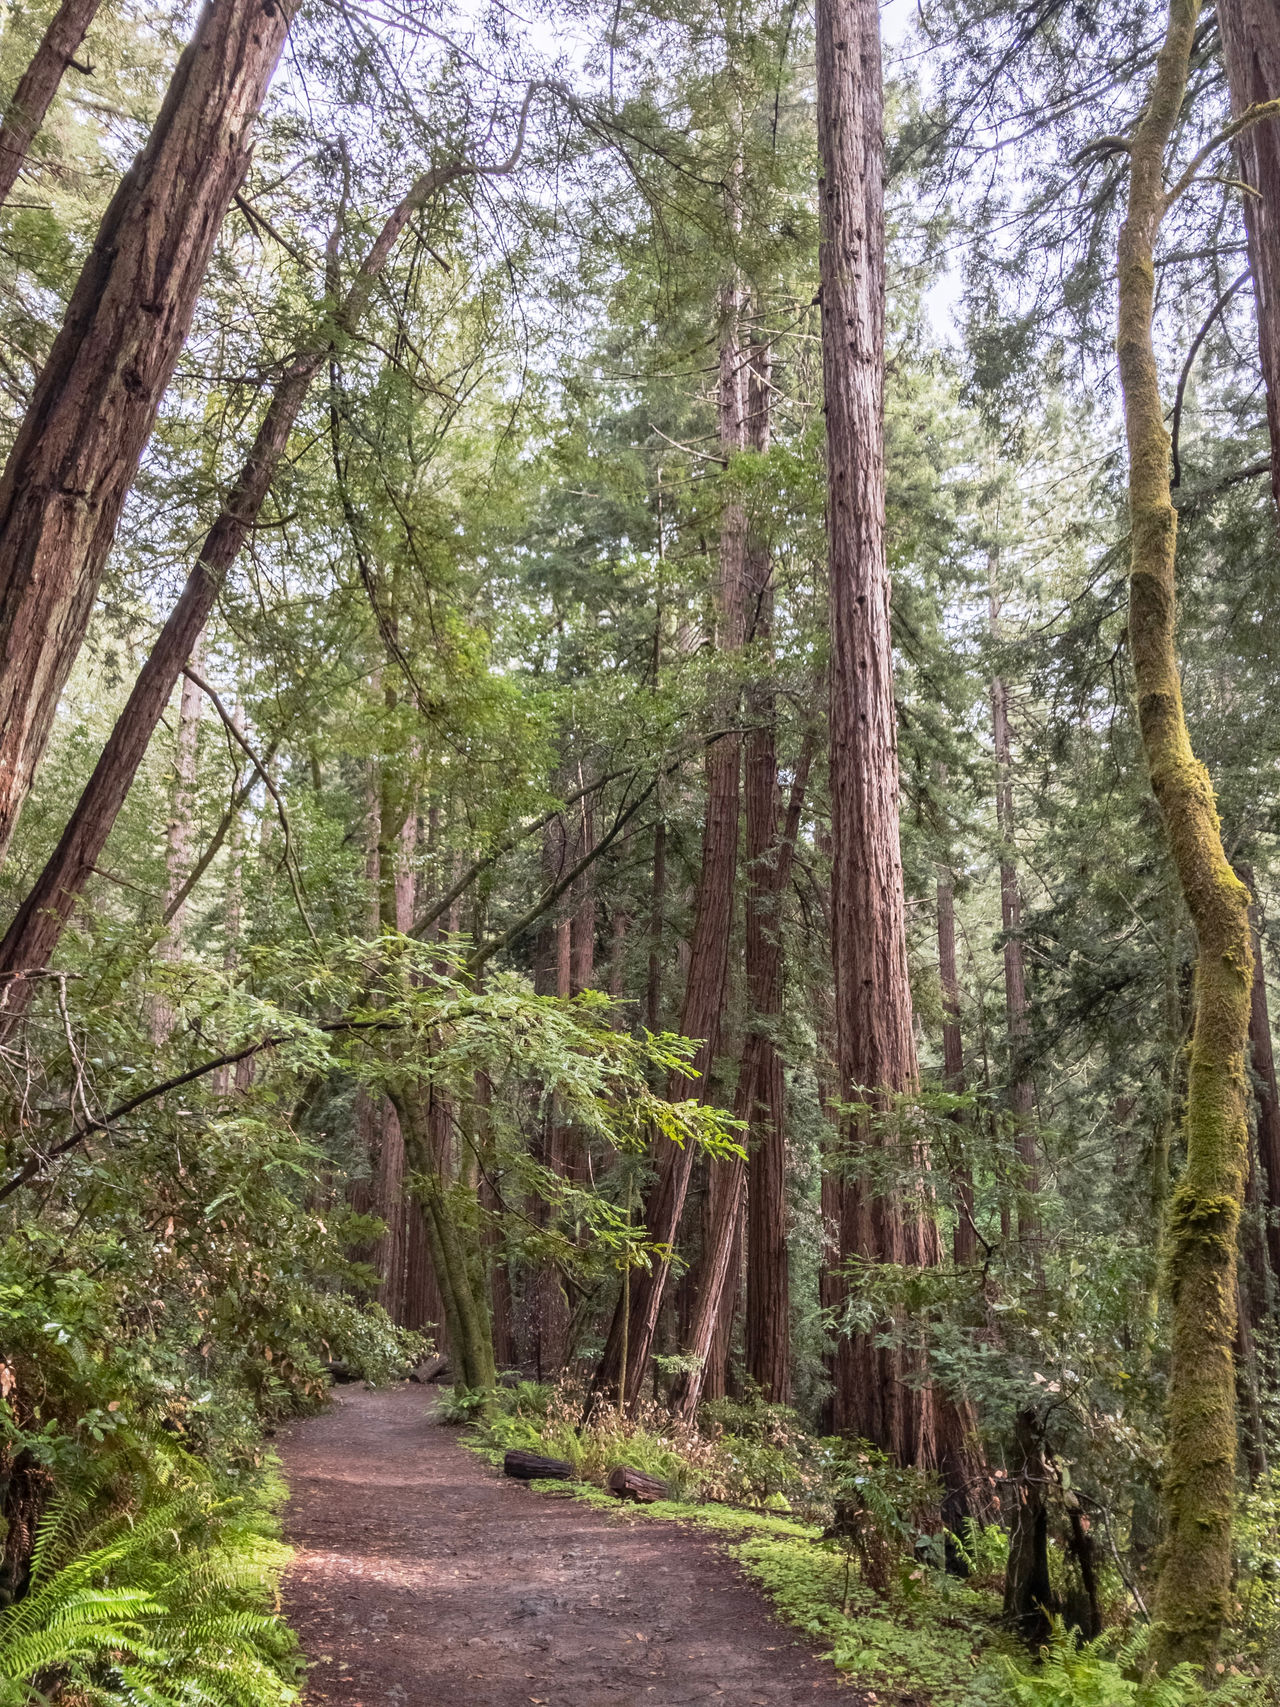 Muir Woods National Monument. California, USA. Photo by Tom Bland. Beauty In Nature California Forest Growth IPhone IPhoneography Landscape Magical Muir Woods Nature No People Outdoors Quiet Redwood Redwood Trees Redwoods Rural Tranquility Trees WoodLand Woods Pathway Path Exploring